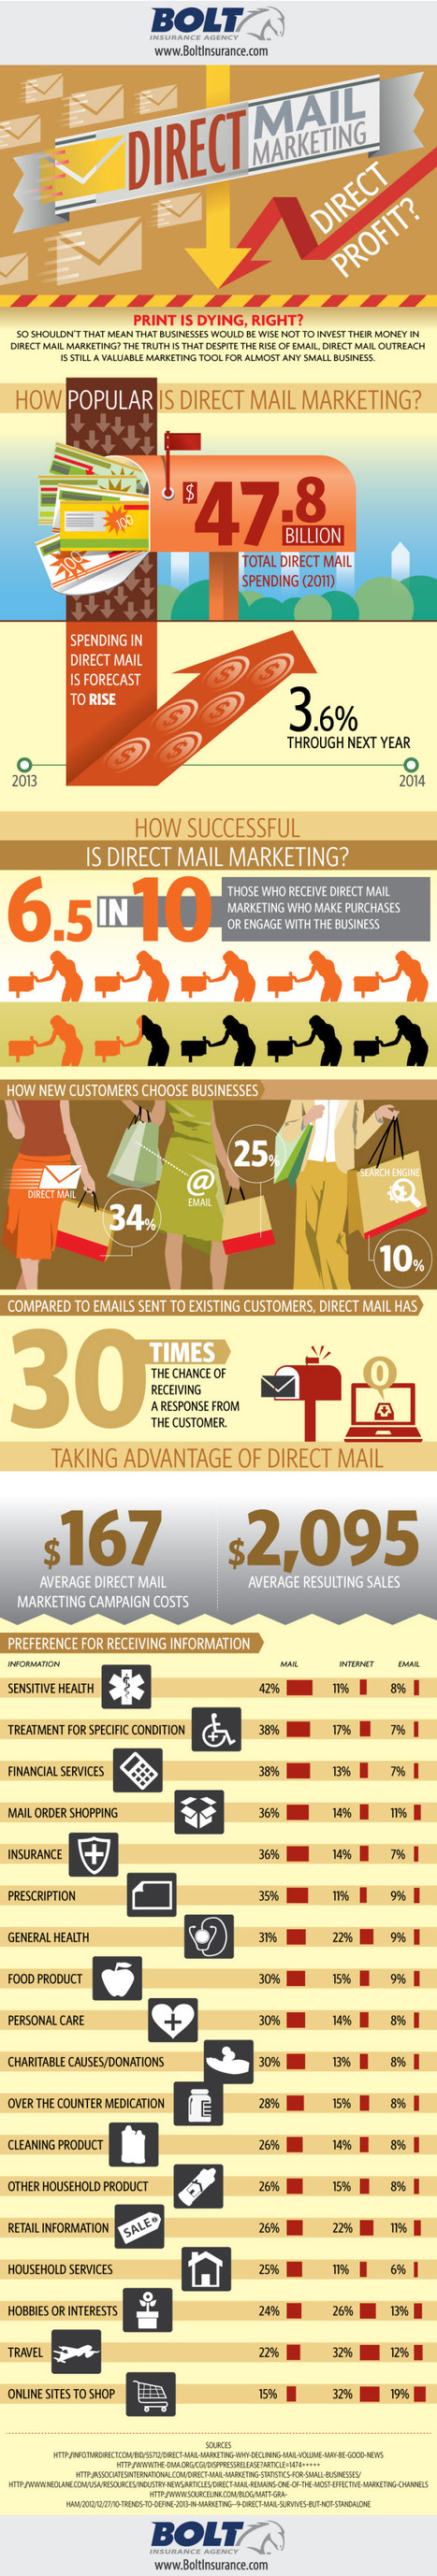 Direct Mail Marketing, Direct Profit? [Infographic] - Profs | #TheMarketingAutomationAlert | Brand and brand management | Scoop.it